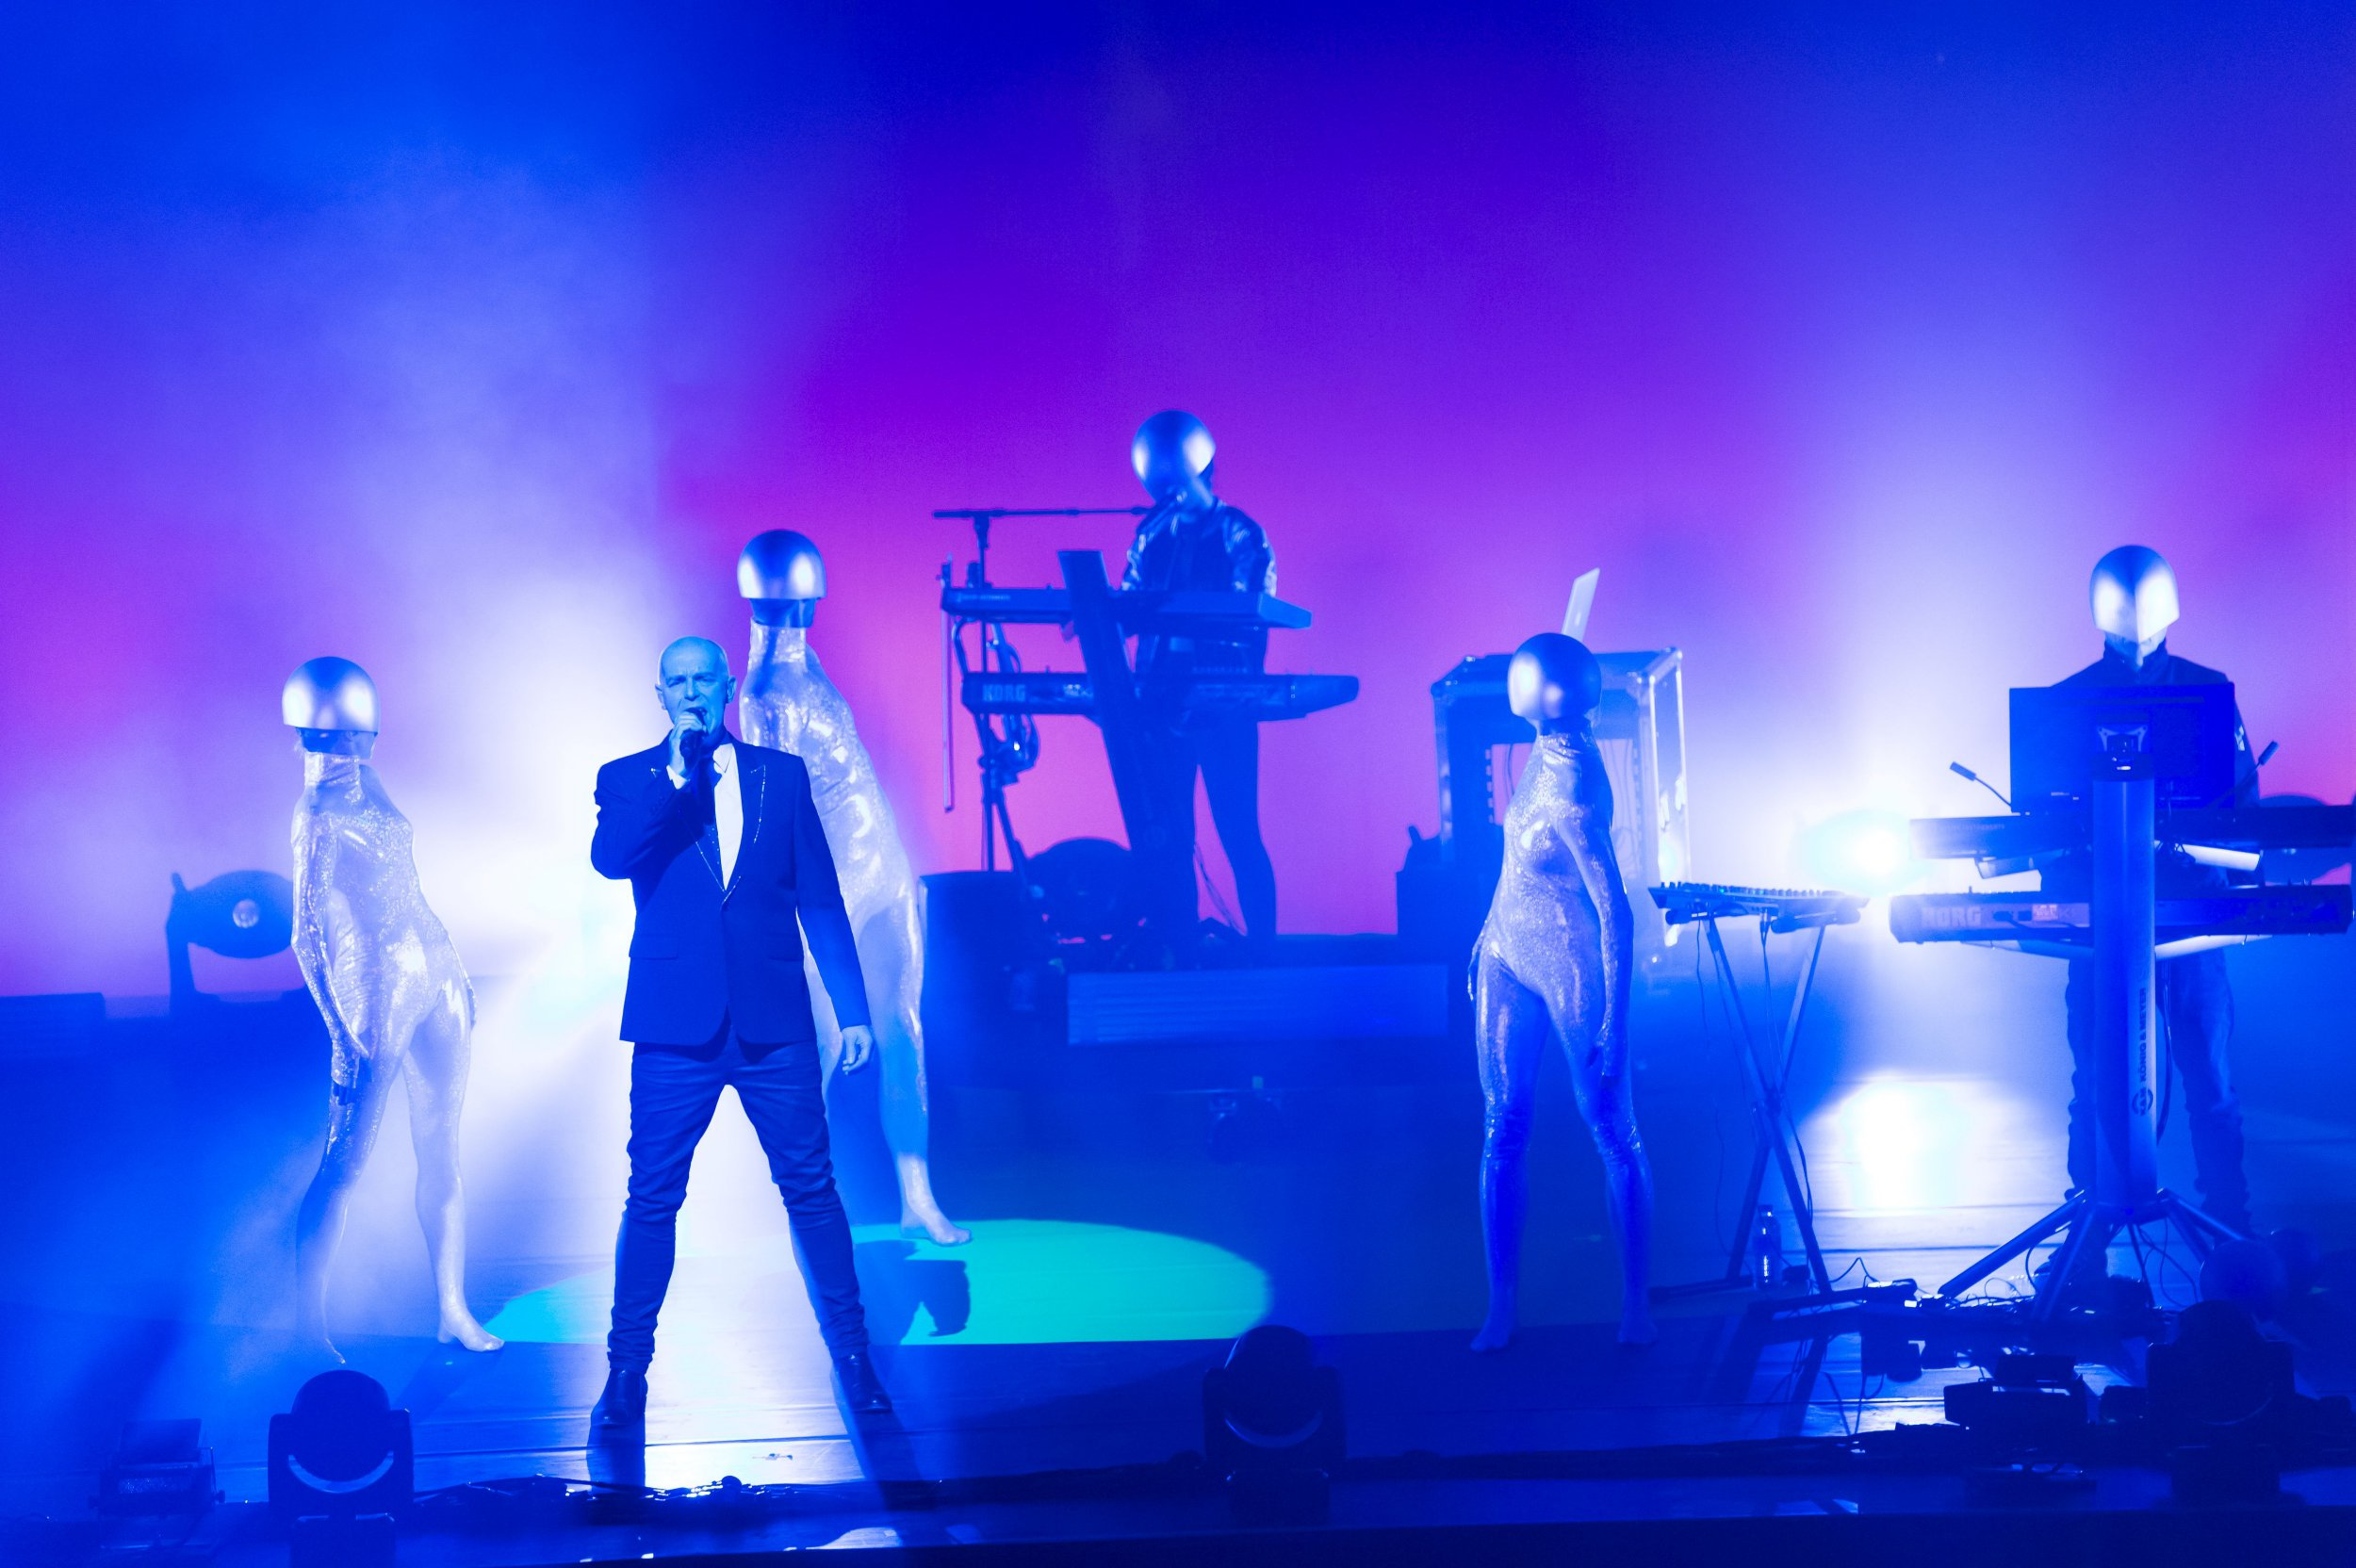 Exclusive - Editorial Use Only. No Merchandising. Pictures must not be archived and must be removed from your files on or before 20 Oct 2016 Mandatory Credit: Photo by Ken McKay/REX/Shutterstock (5777925i) The Pet Shop Boys Pet Shop Boys in concert on the first night of four sold-out shows at London's Royal Opera House, UK - 20 Jul 2016 Pet Shop Boys at the first night of four sold-out shows at London's Royal Opera House. Exclusive Images.